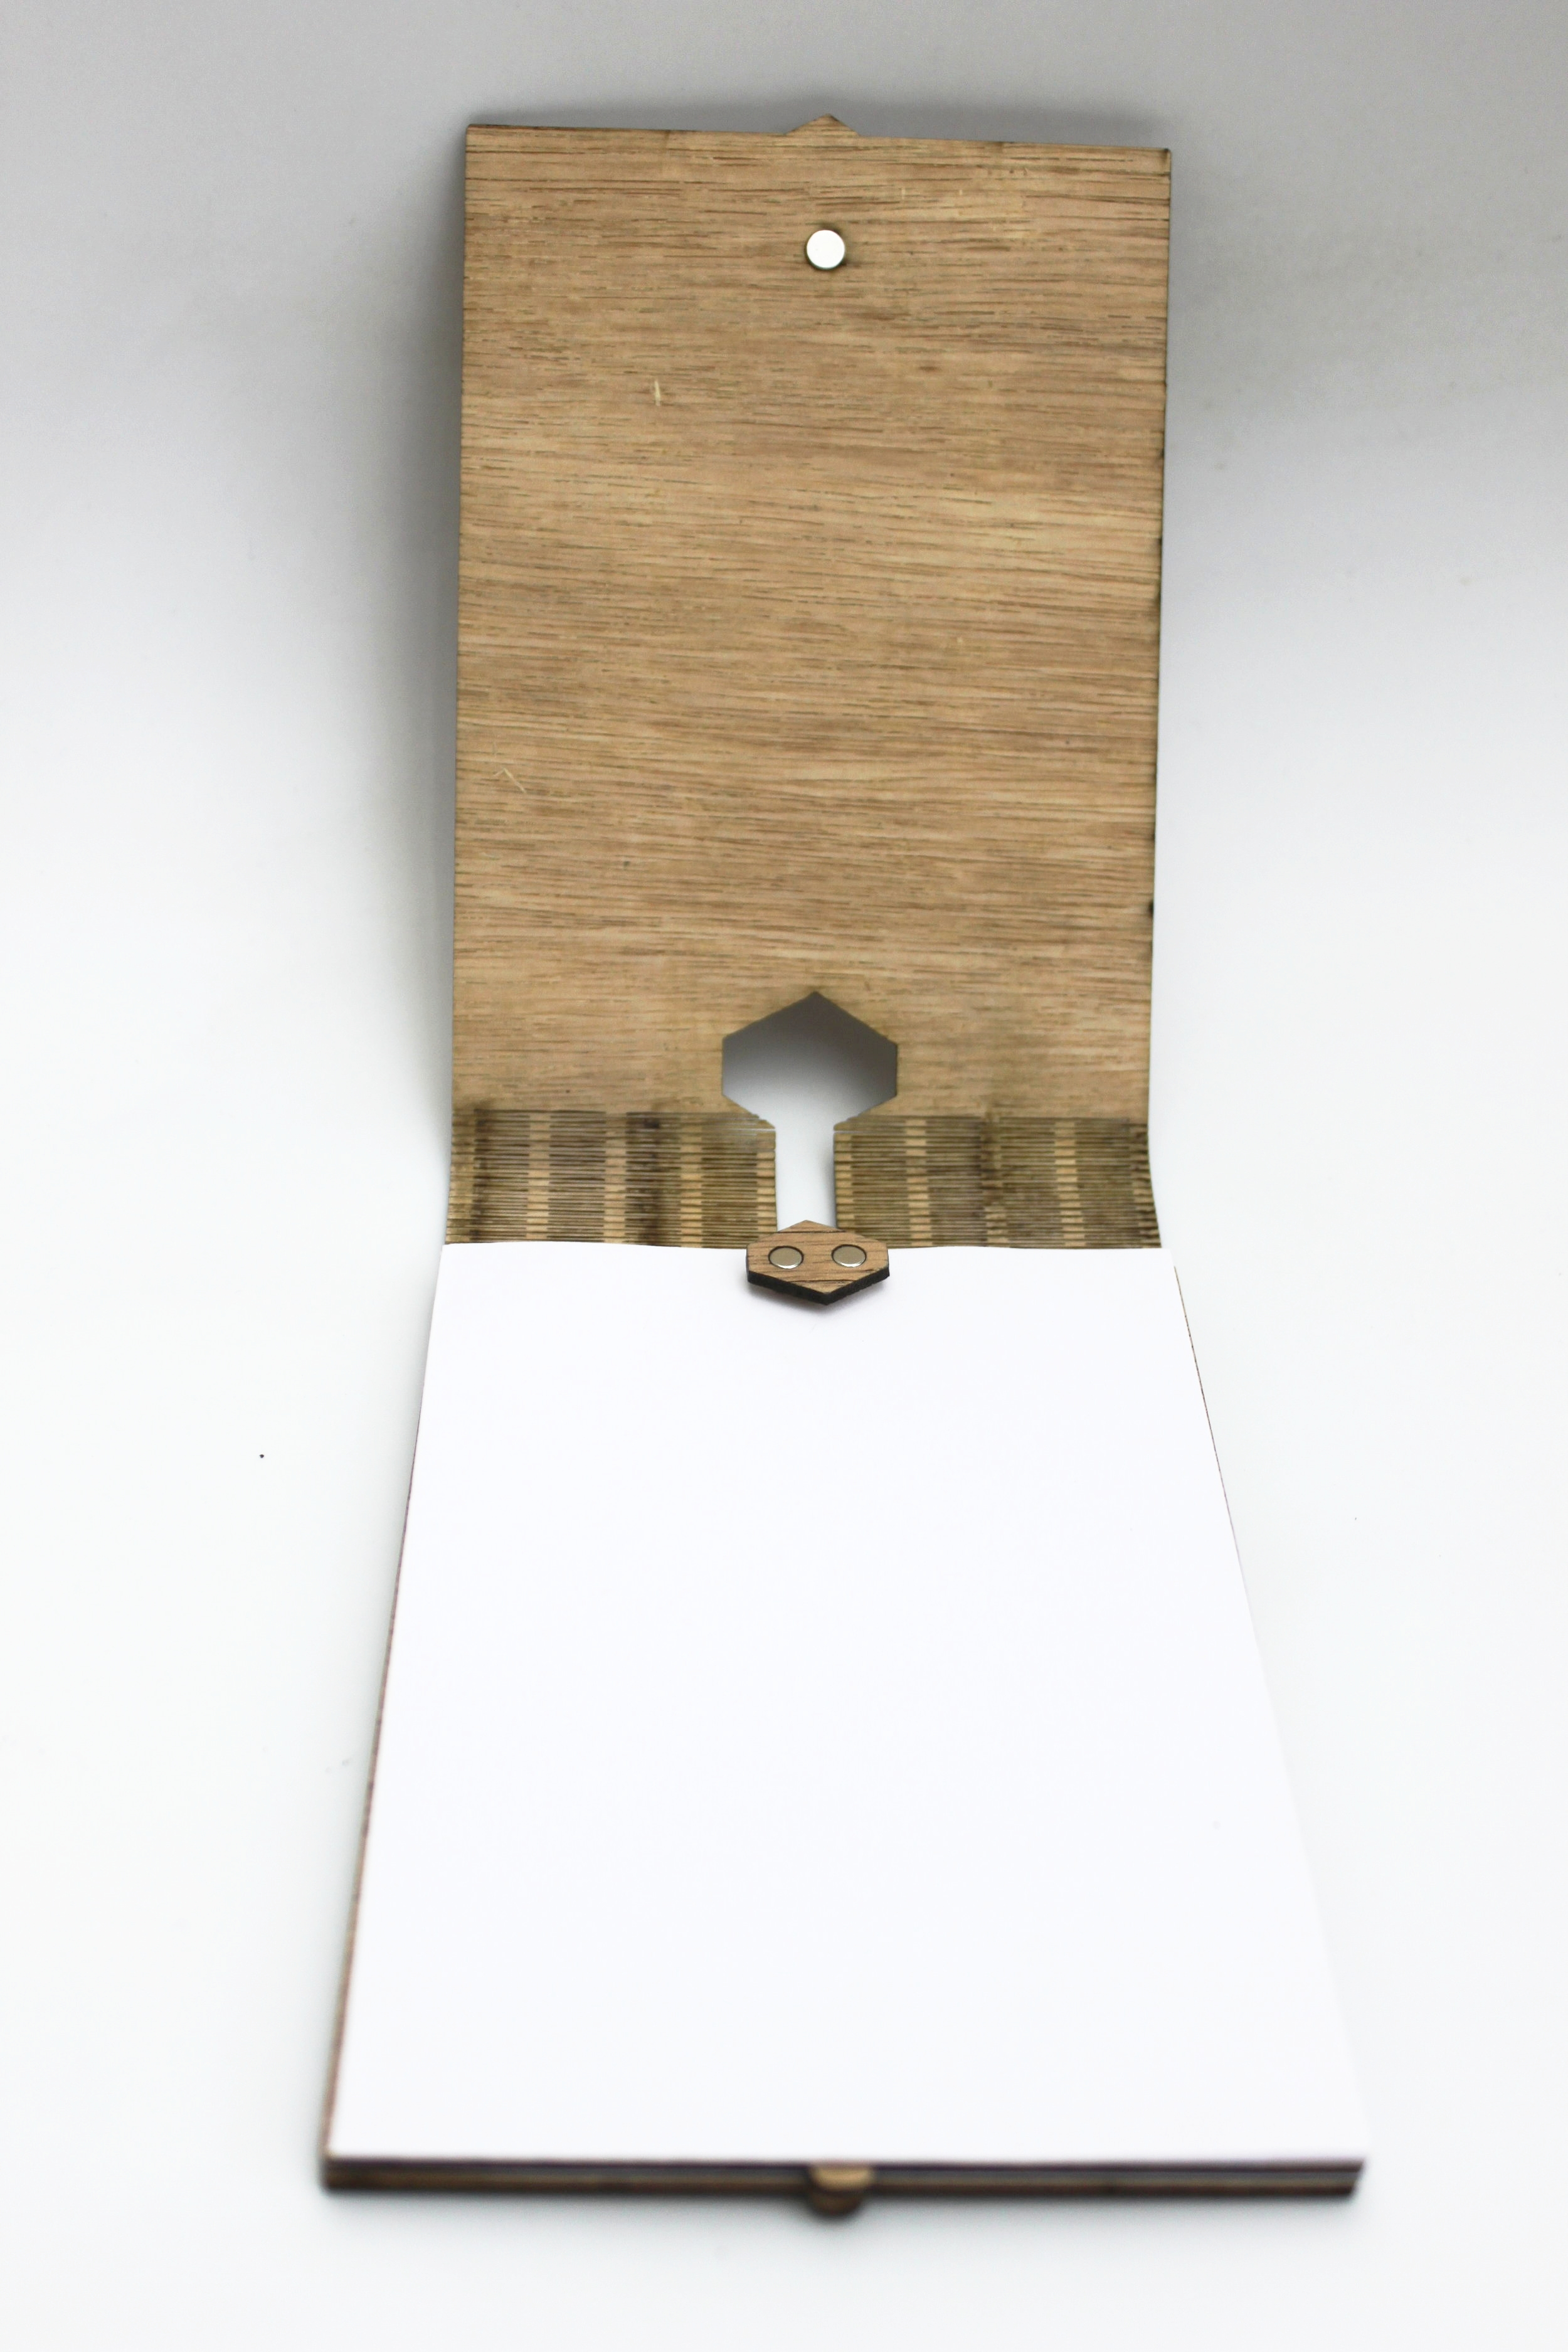 PaperBoard by Adidesigns - Opened